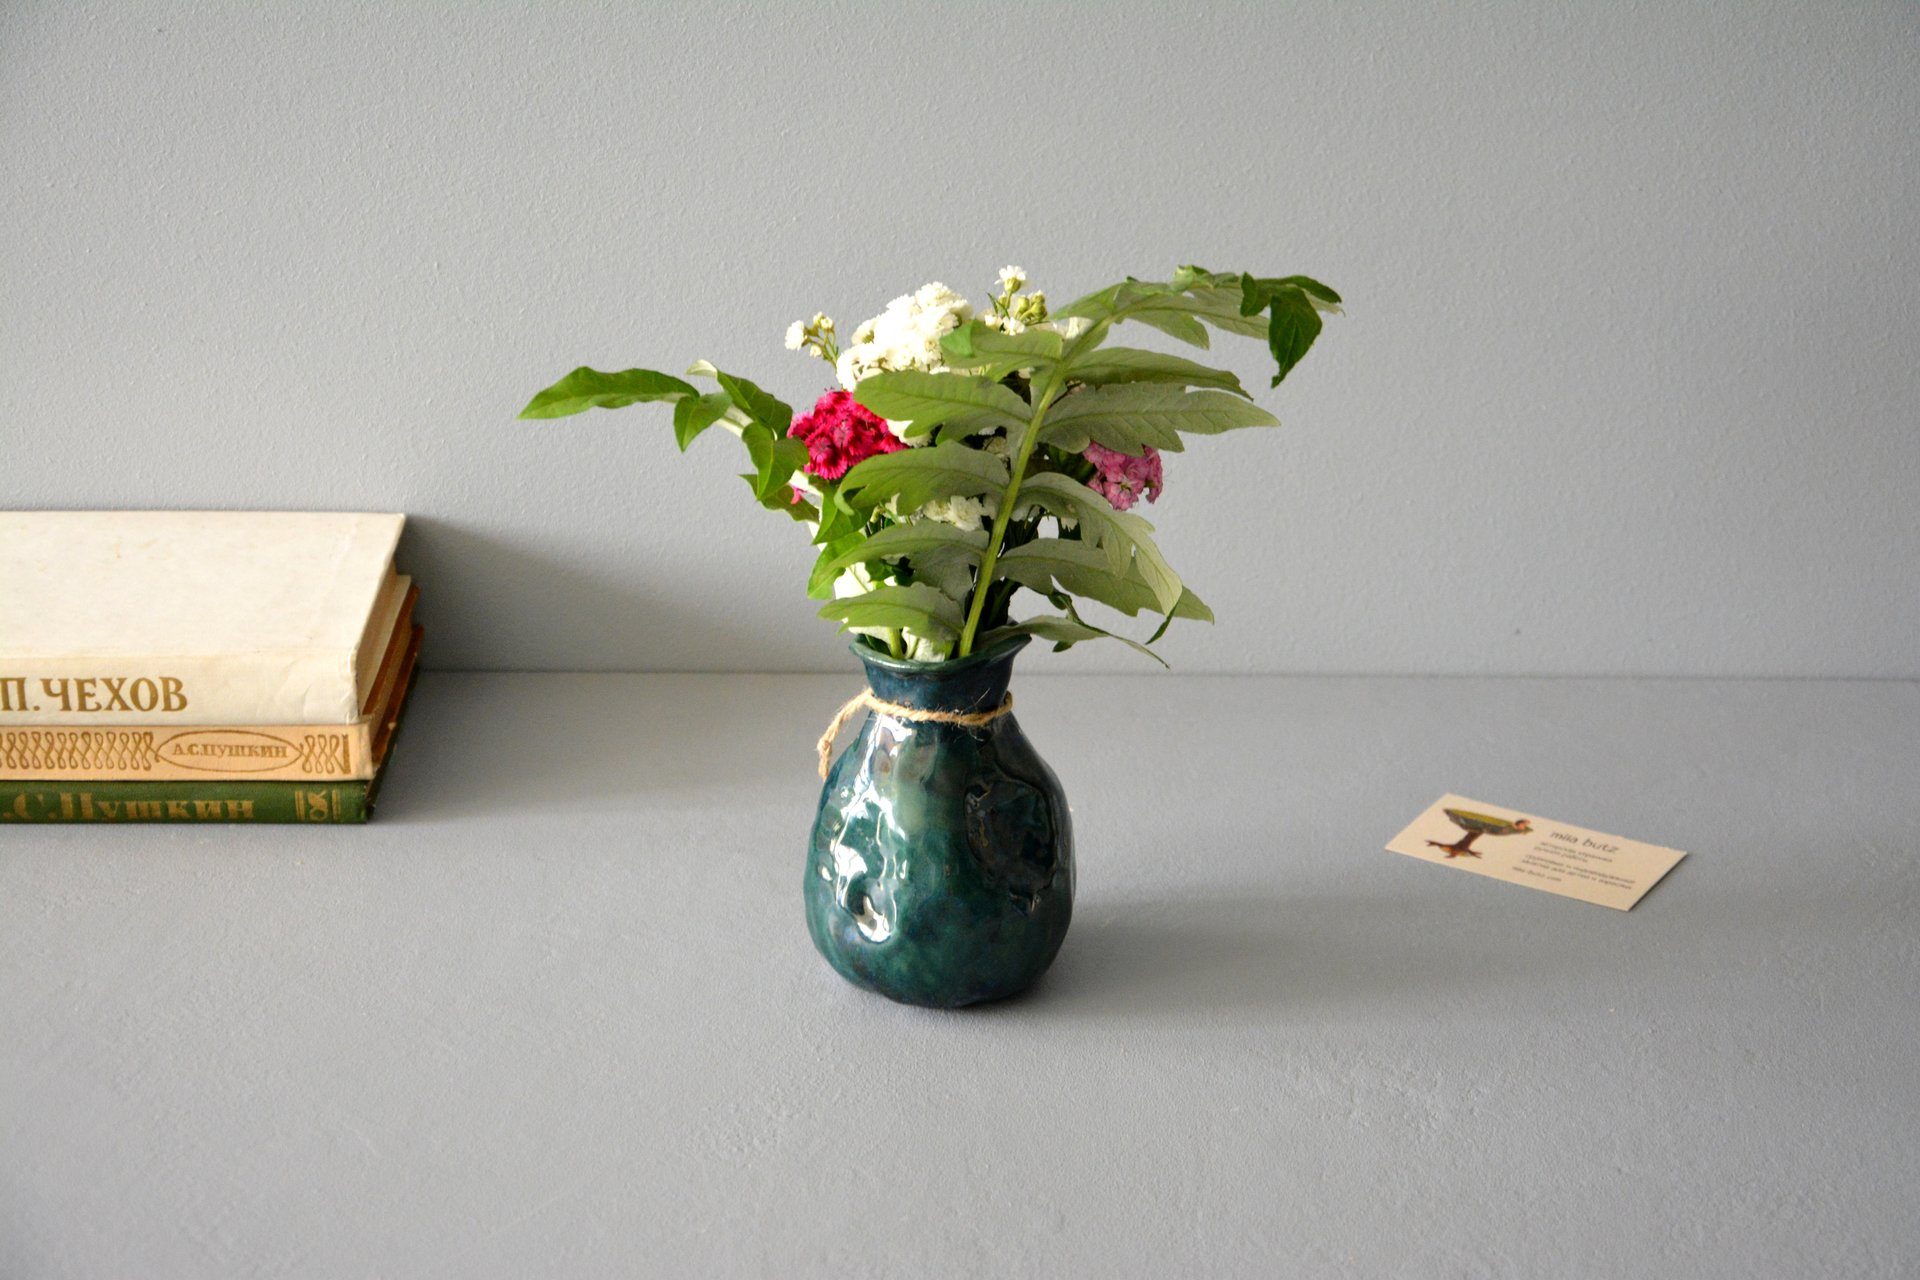 Exclusive vase is an incredible green bag, height - 12 cm, color - deep emerald, photo 5 of 8. 1008.